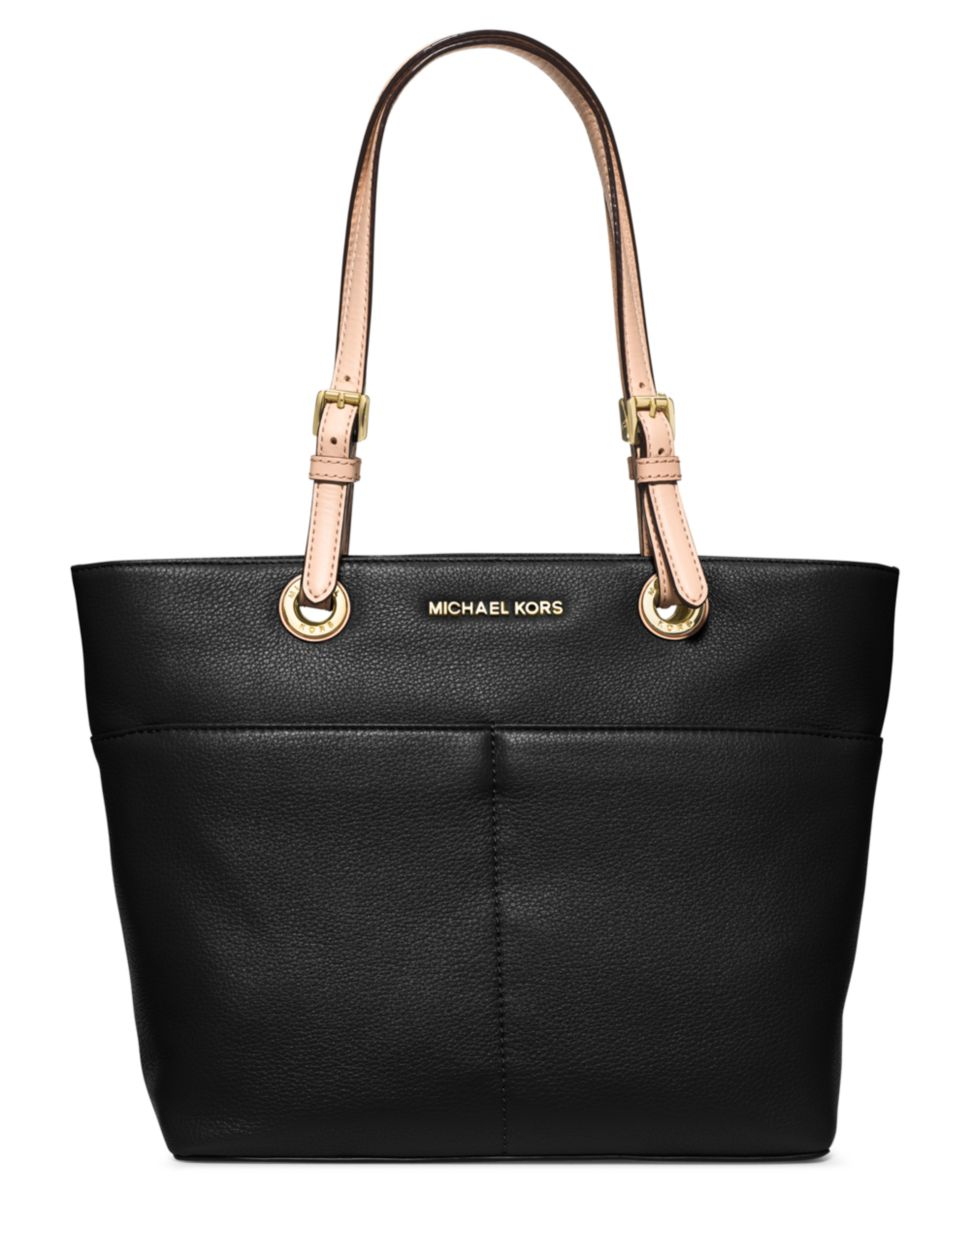 micheal kors Michael kors is a world-renowned, award-winning designer of luxury accessories and ready to wear his namesake company, established in 1981, currently produc.